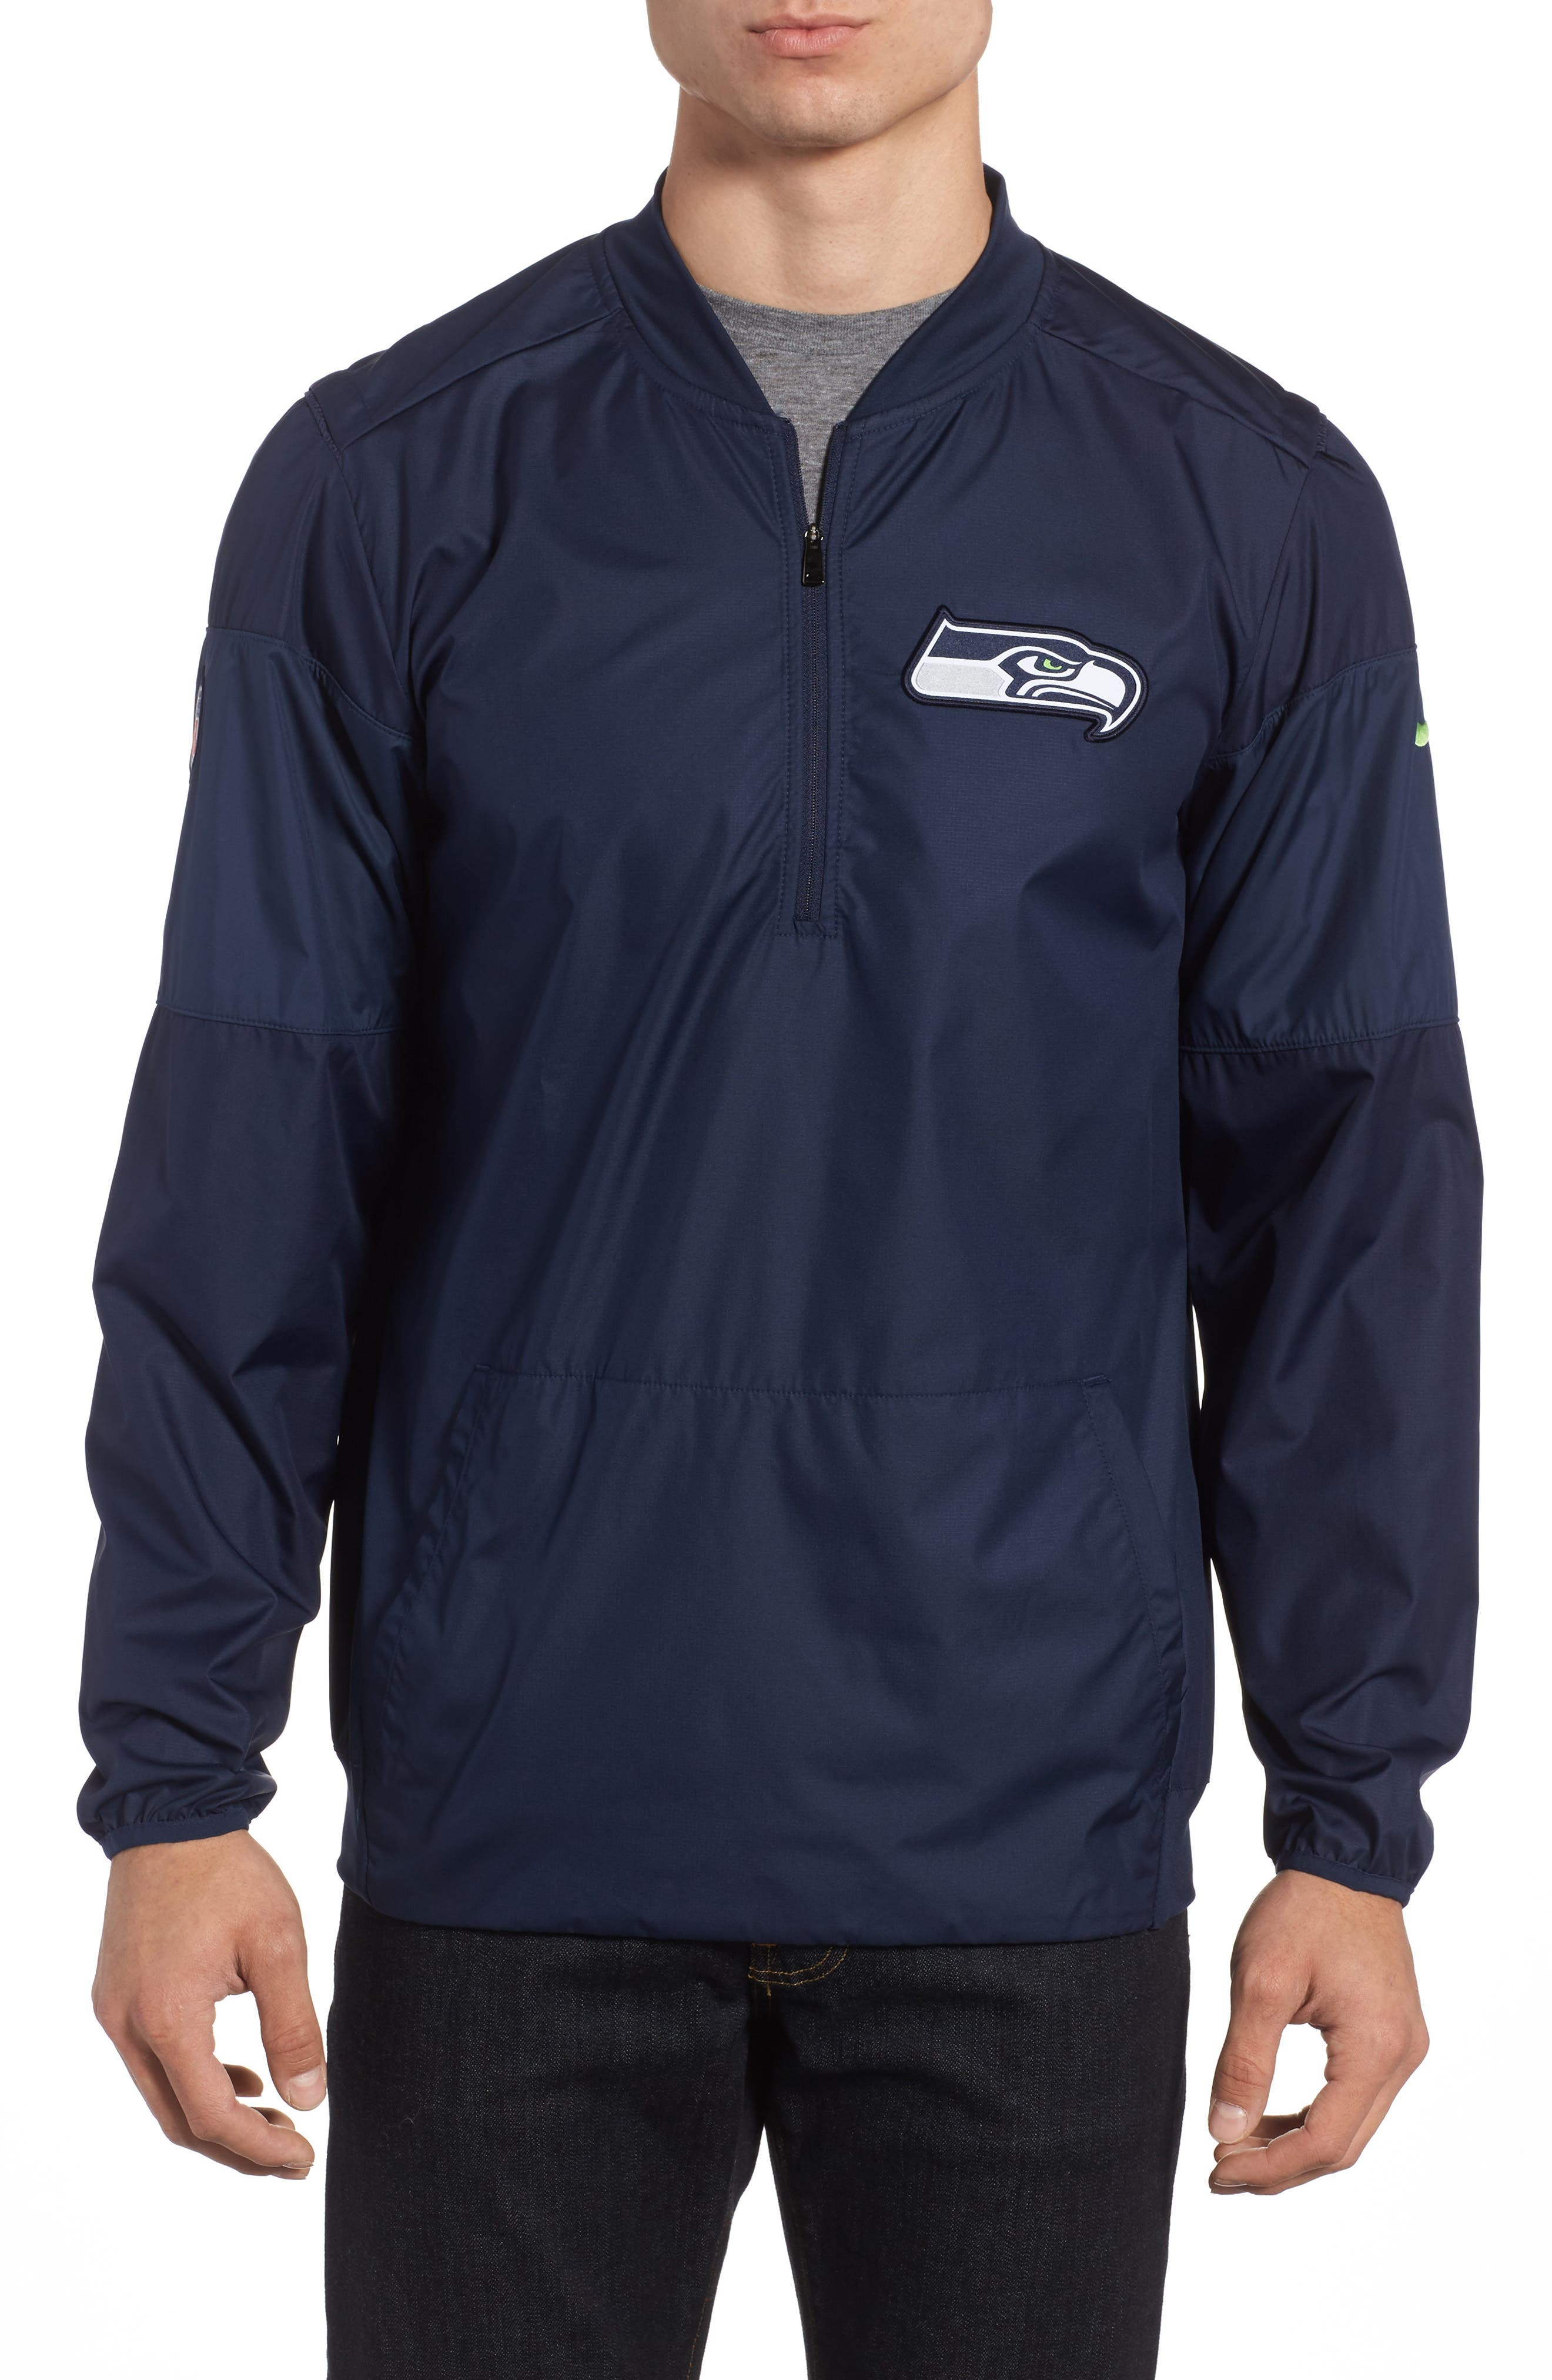 Nike Lockdown NFL Pullover Jacket